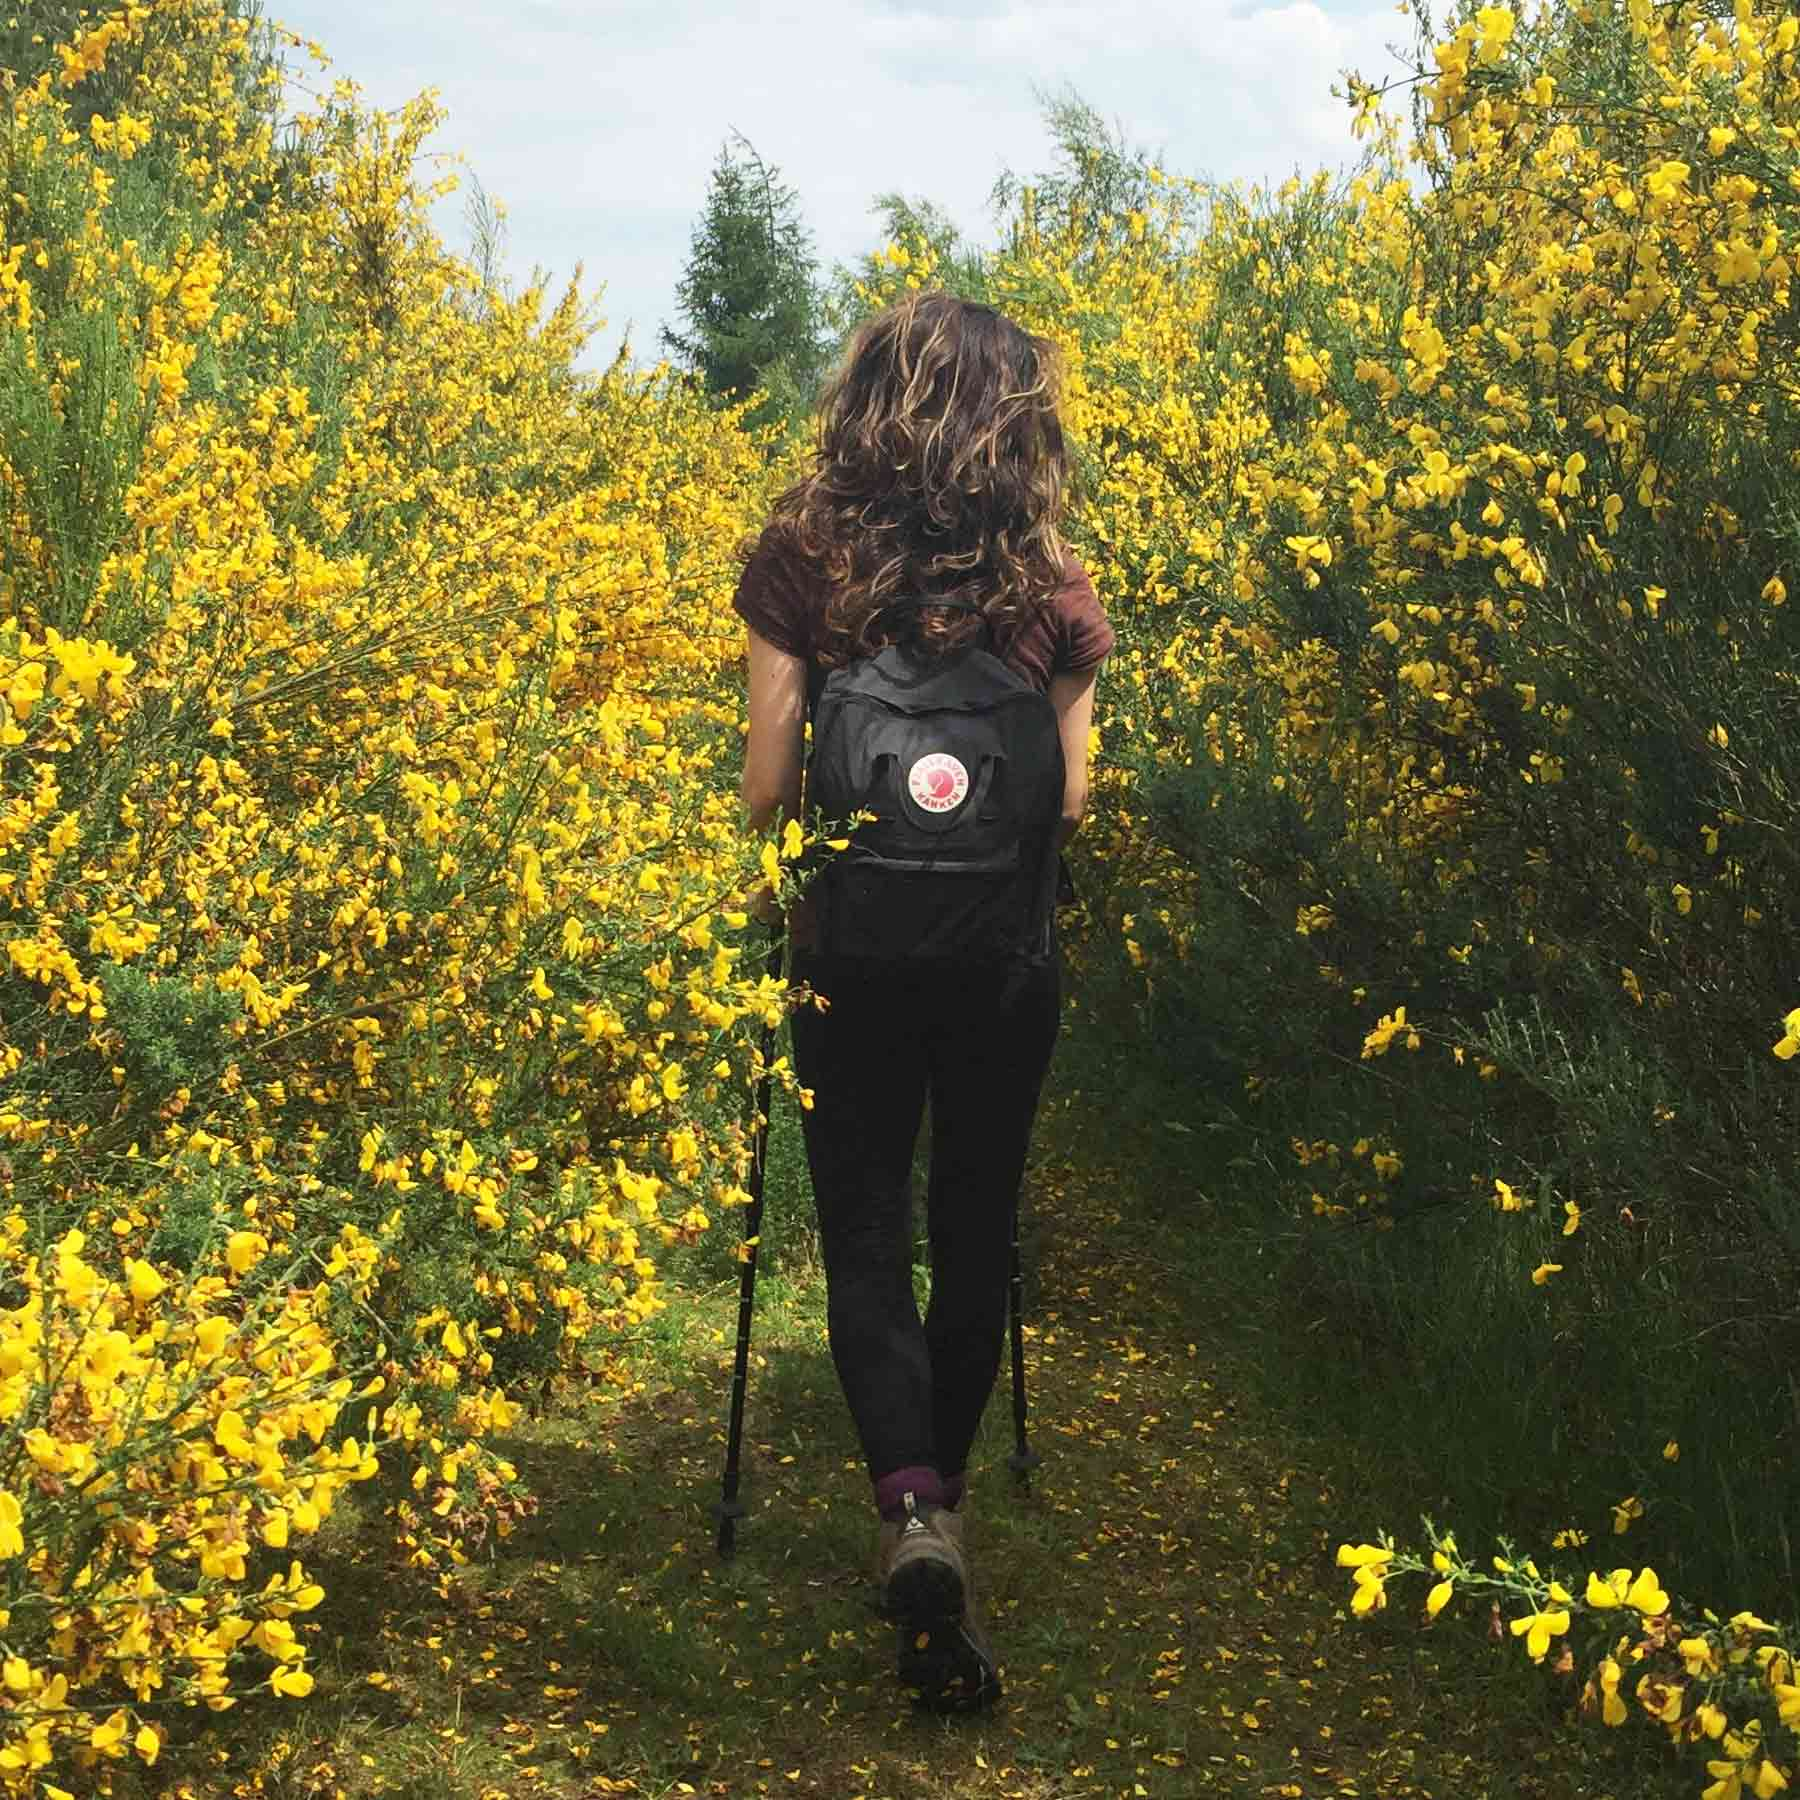 Even a brief stroll surrounded by nature can lower stress levels